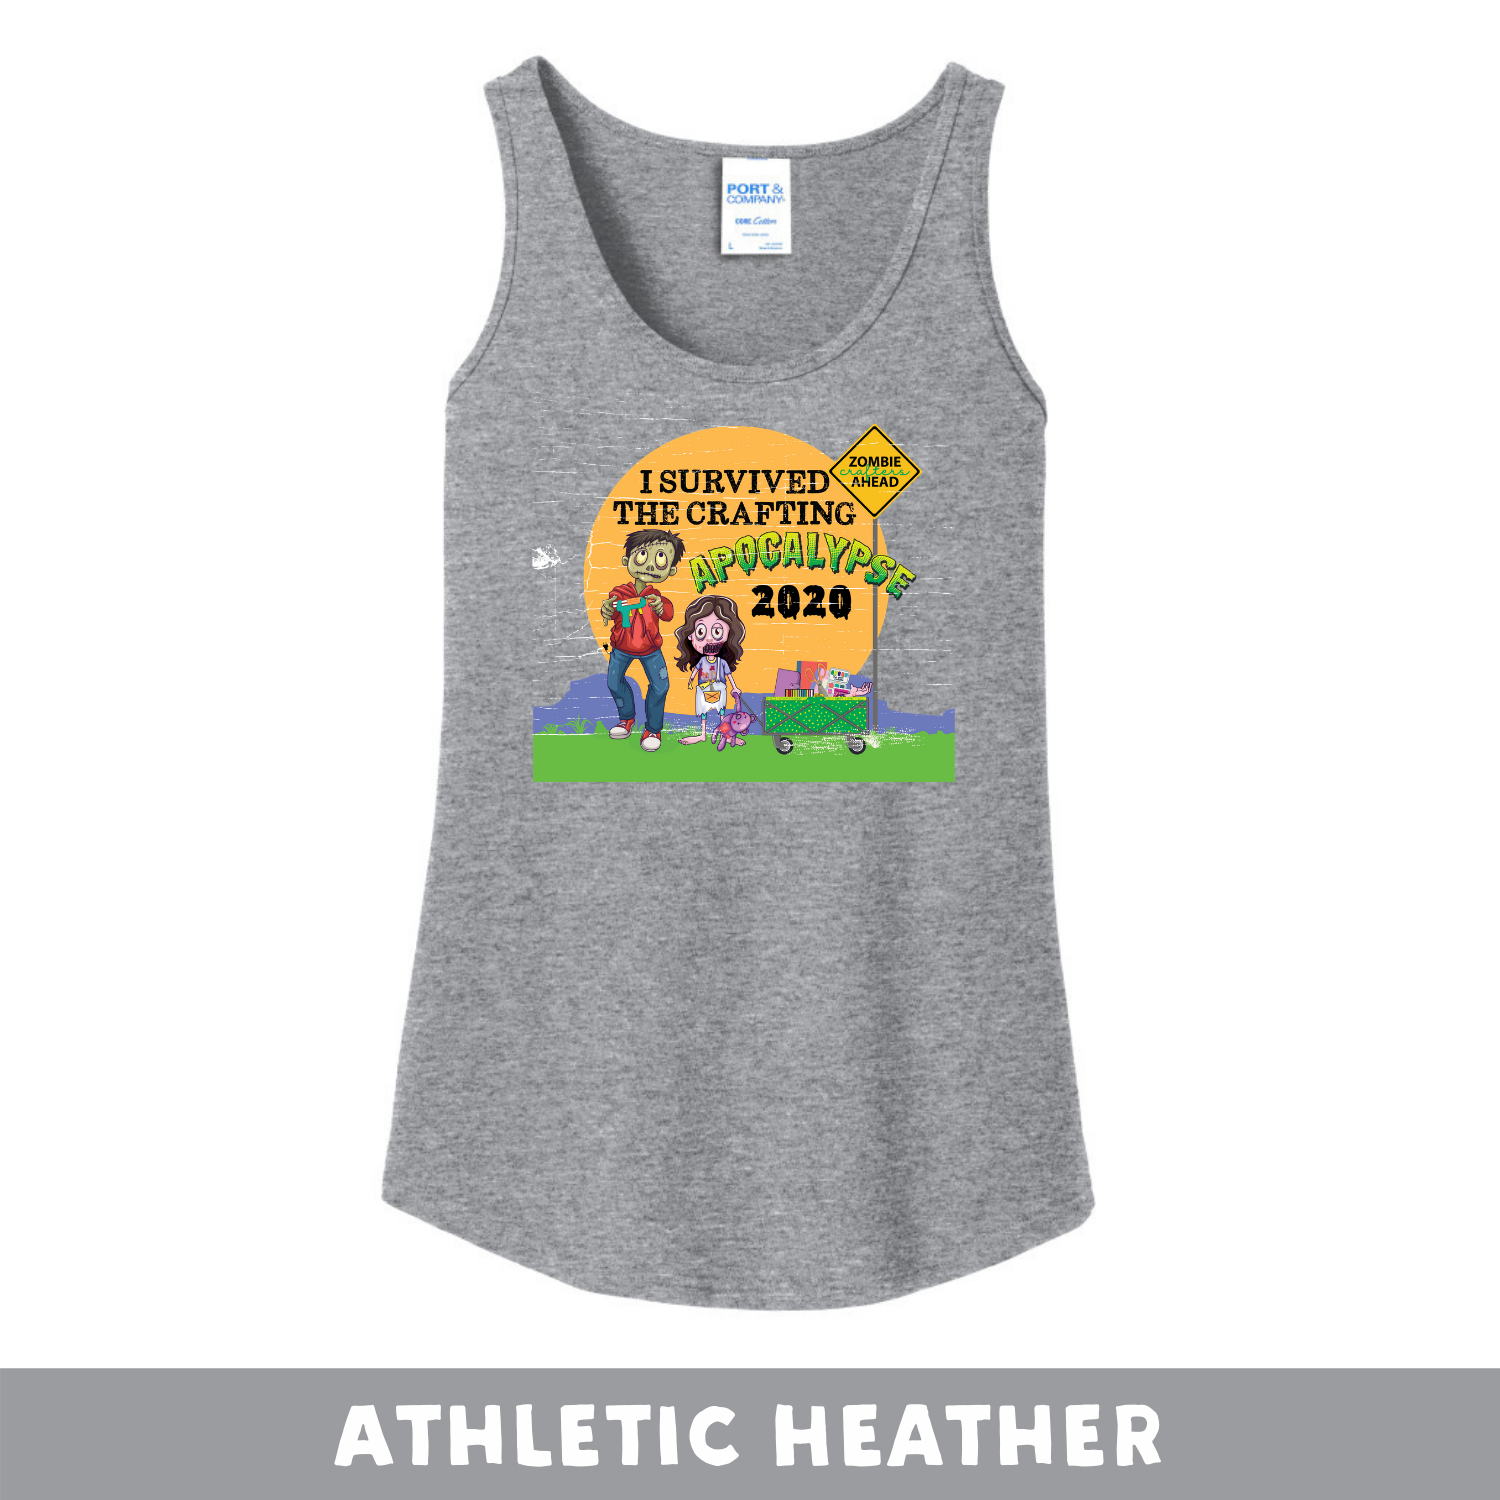 Athletic Heather -  Woman's Cut Tank Top - I Survived The 2020 Crafting Apocalypse